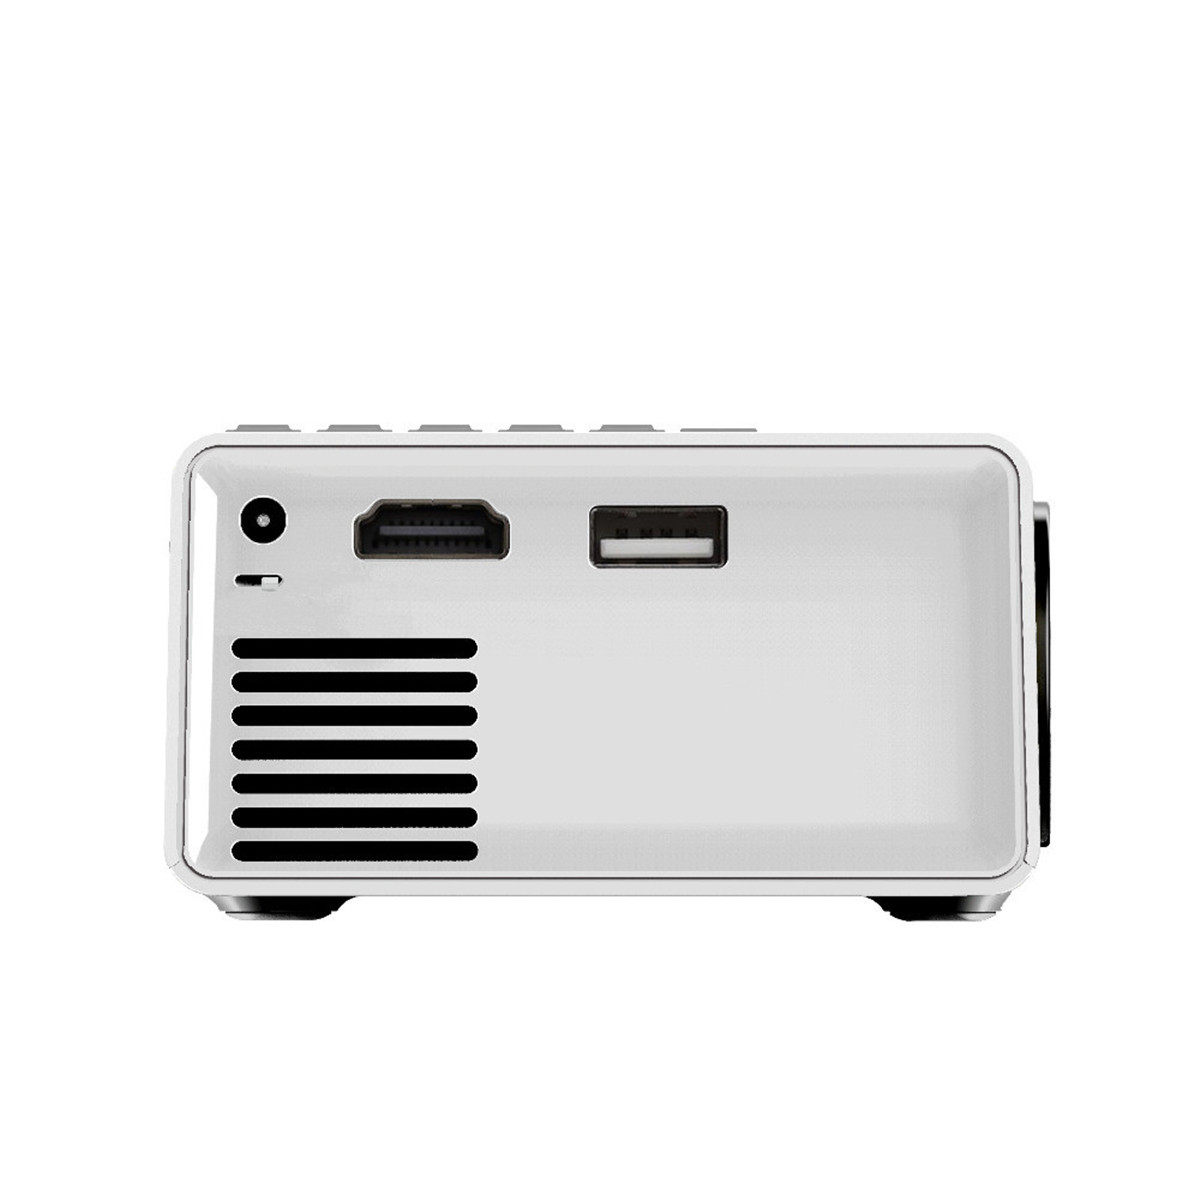 Yg300 lcd mini portable 1080p led projector home cinema for What s the best pocket projector